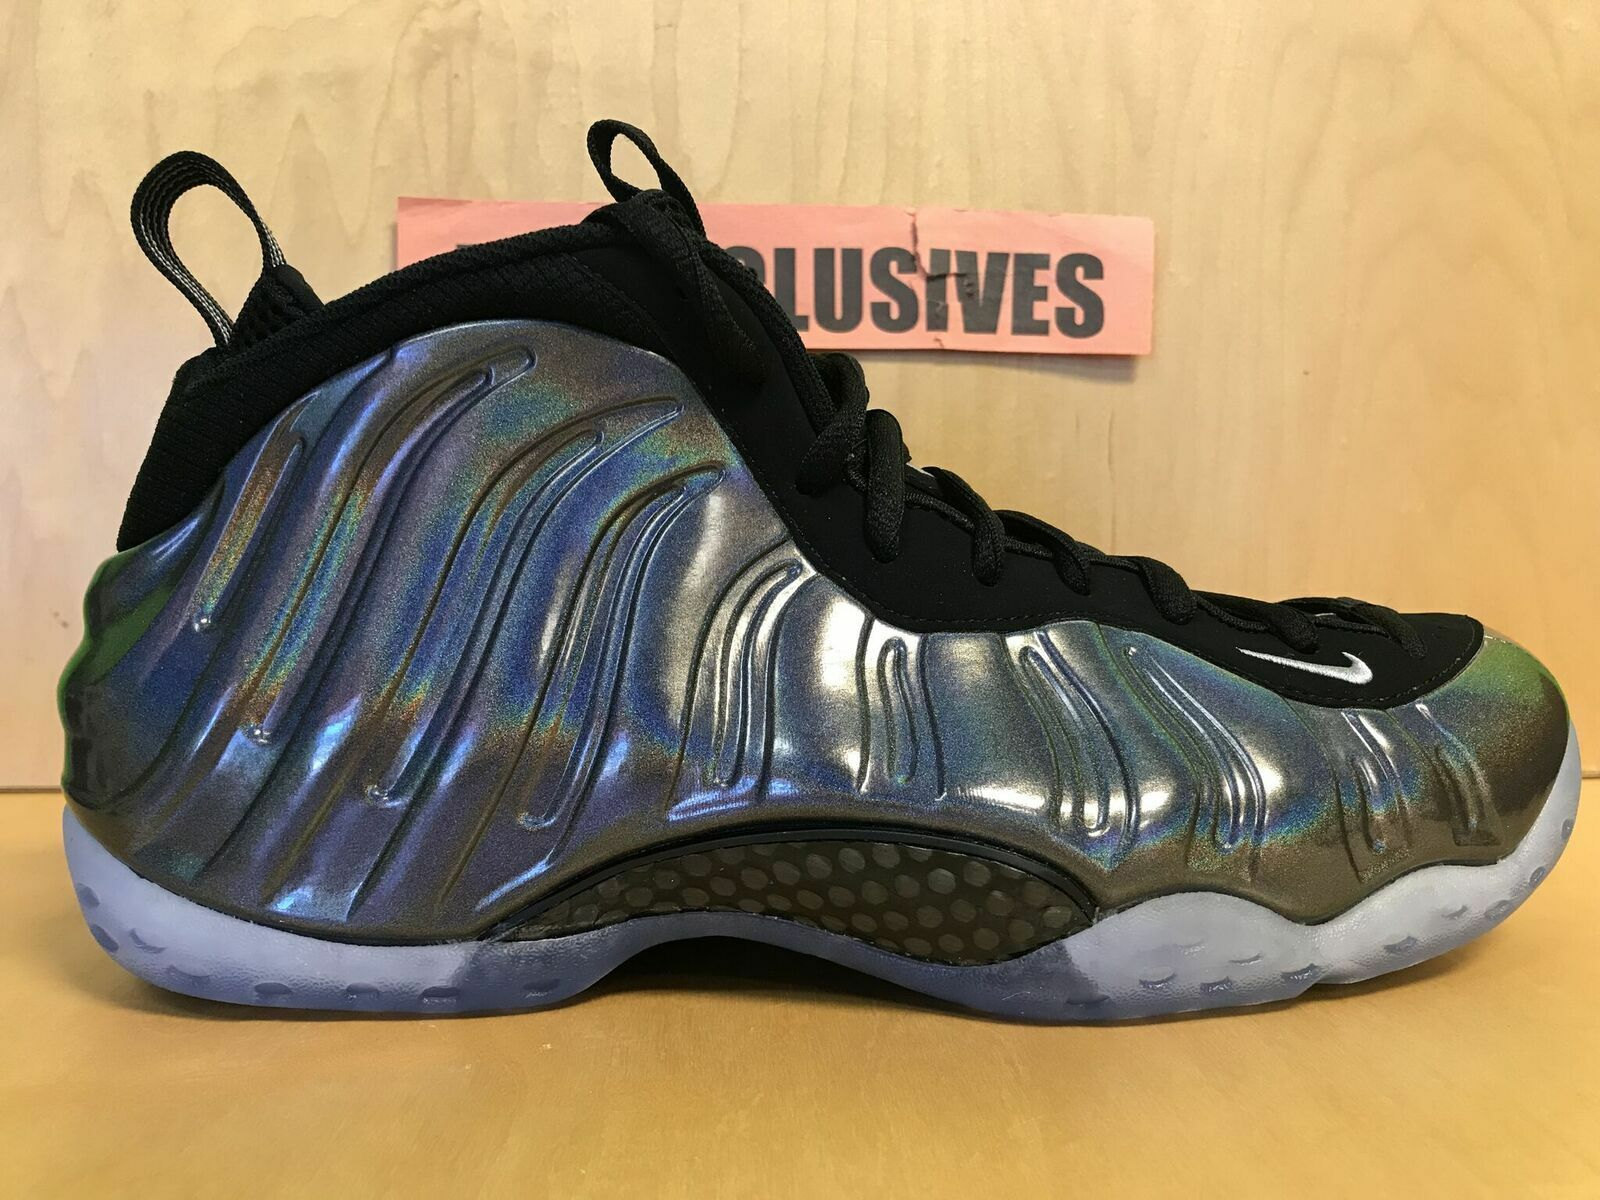 Nike Air Foamposite One Hologram 2015 Multi-color 314996-900 Size 10.5